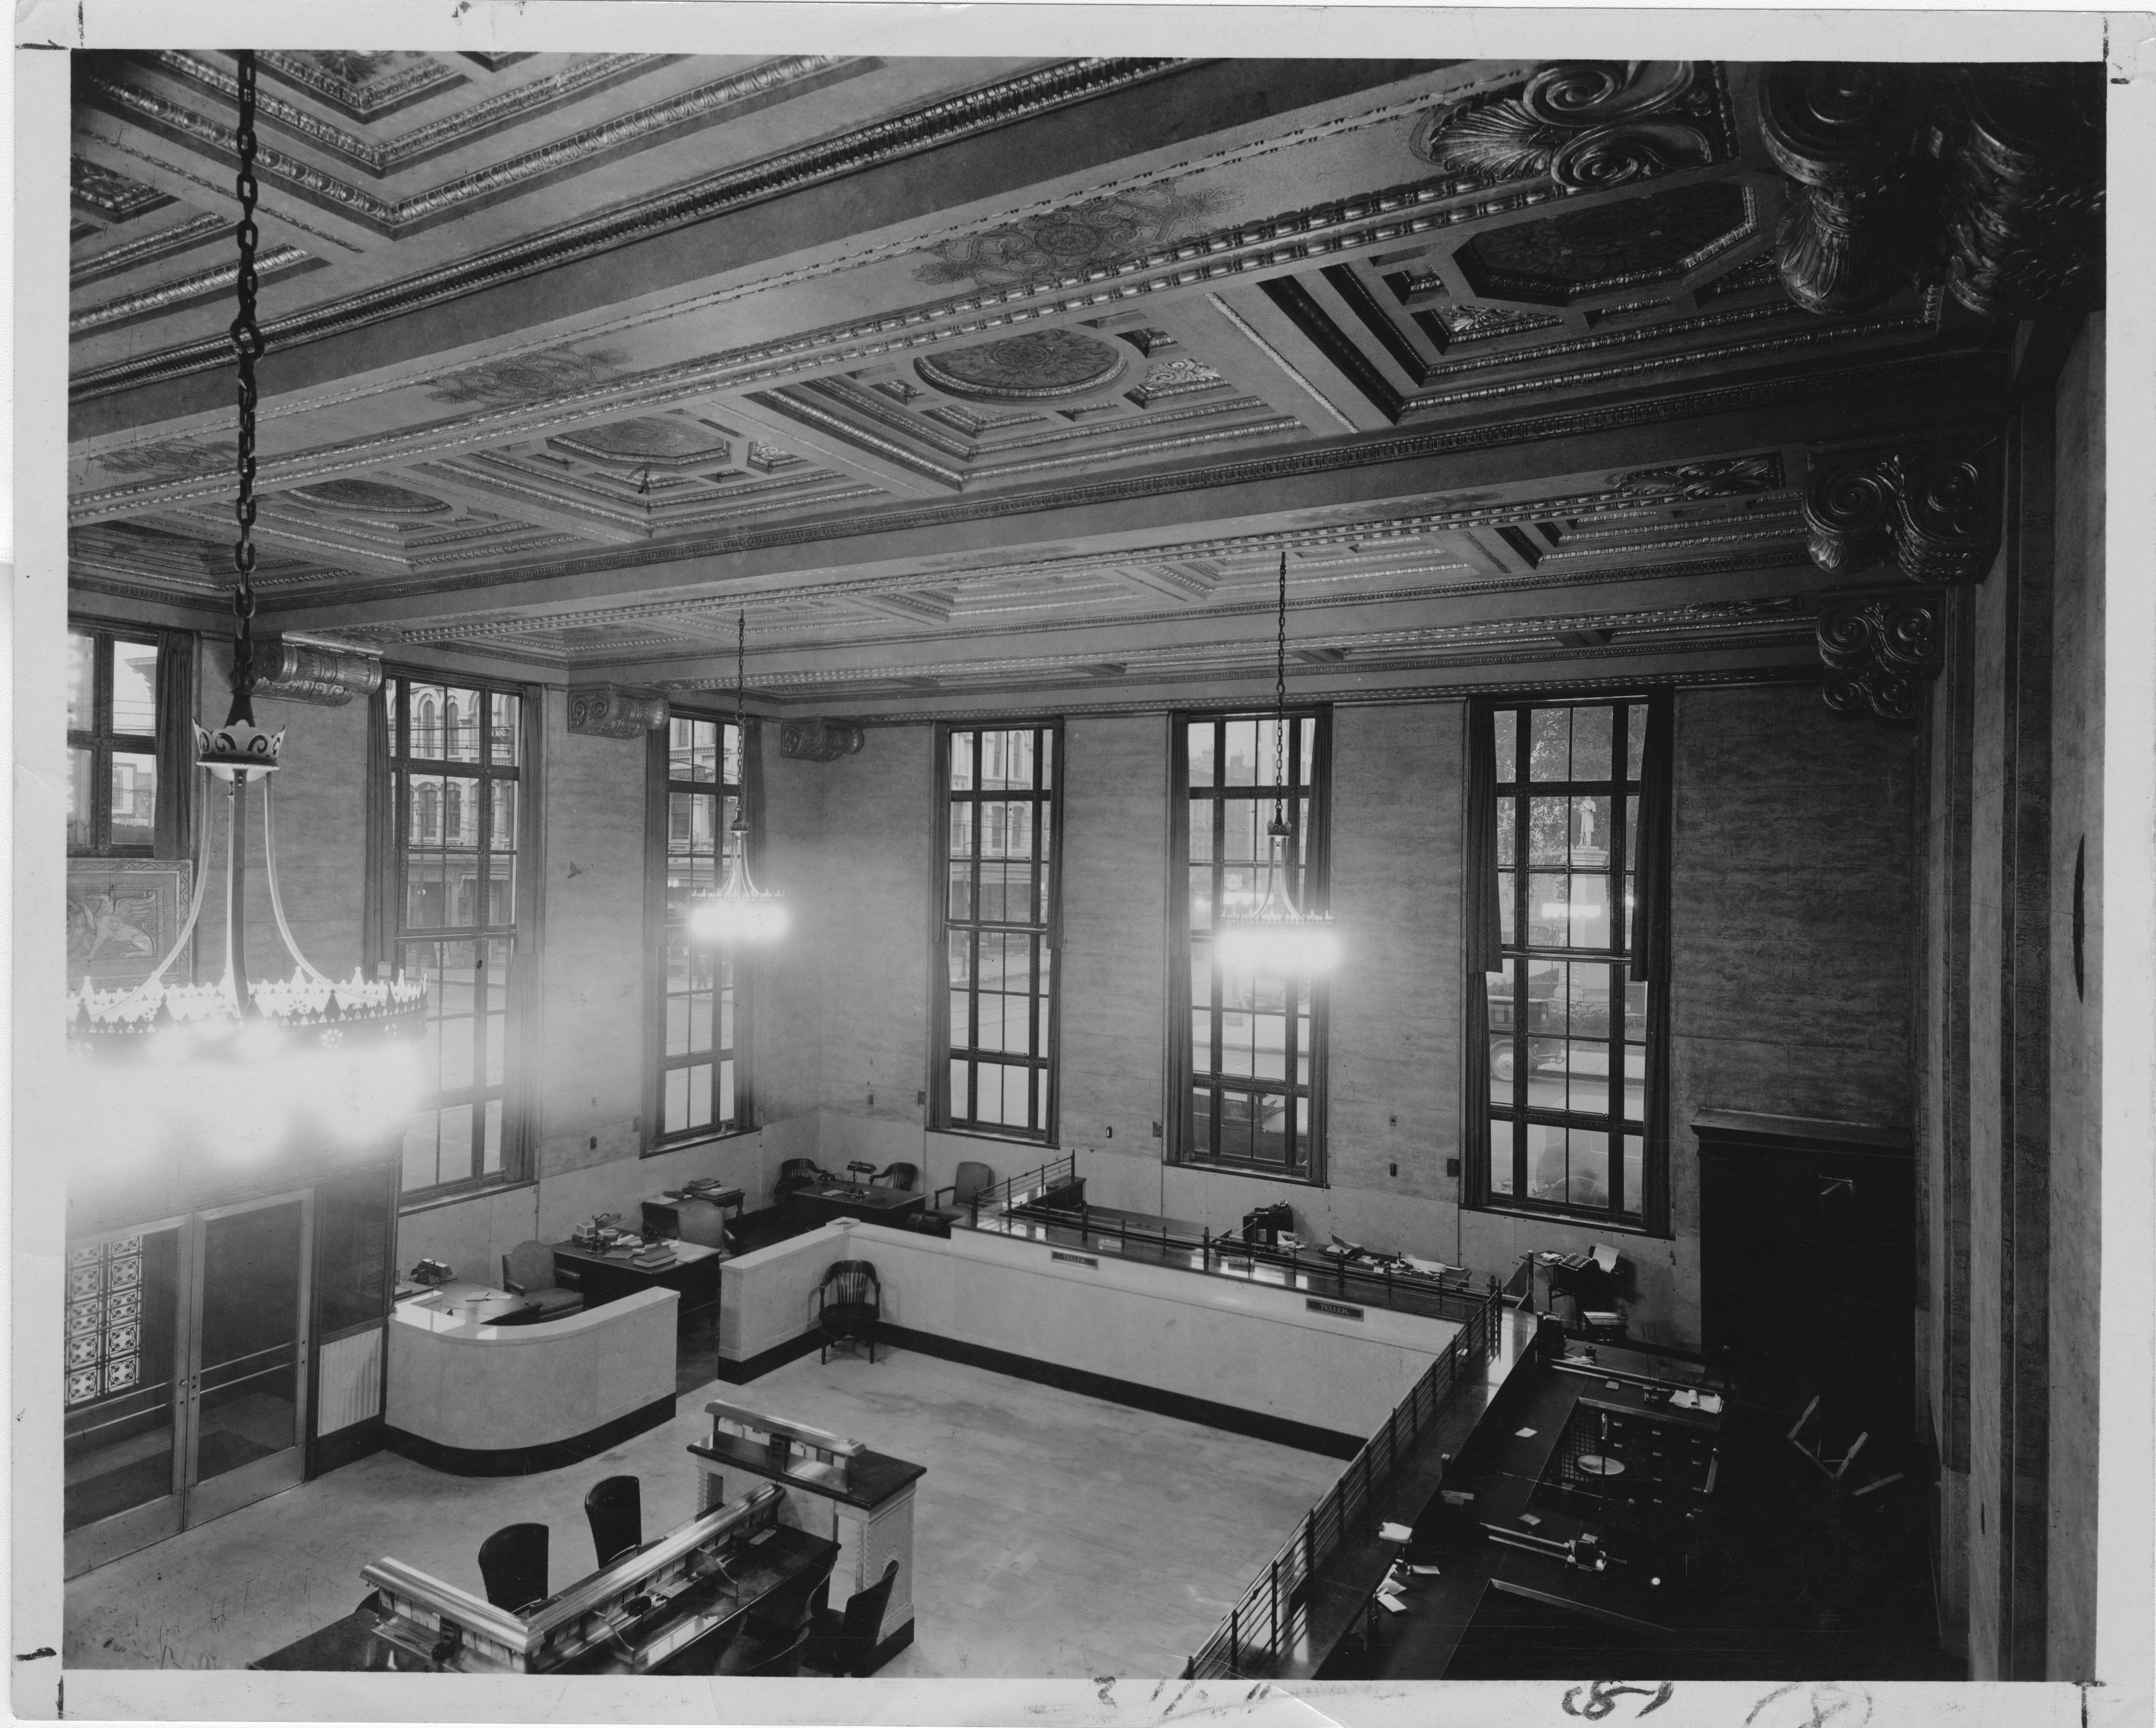 Inside Ann Arbor Savings and Commercial Bank, former Farmers & Mechanics Bank, corner Huron and Main, 1928 image